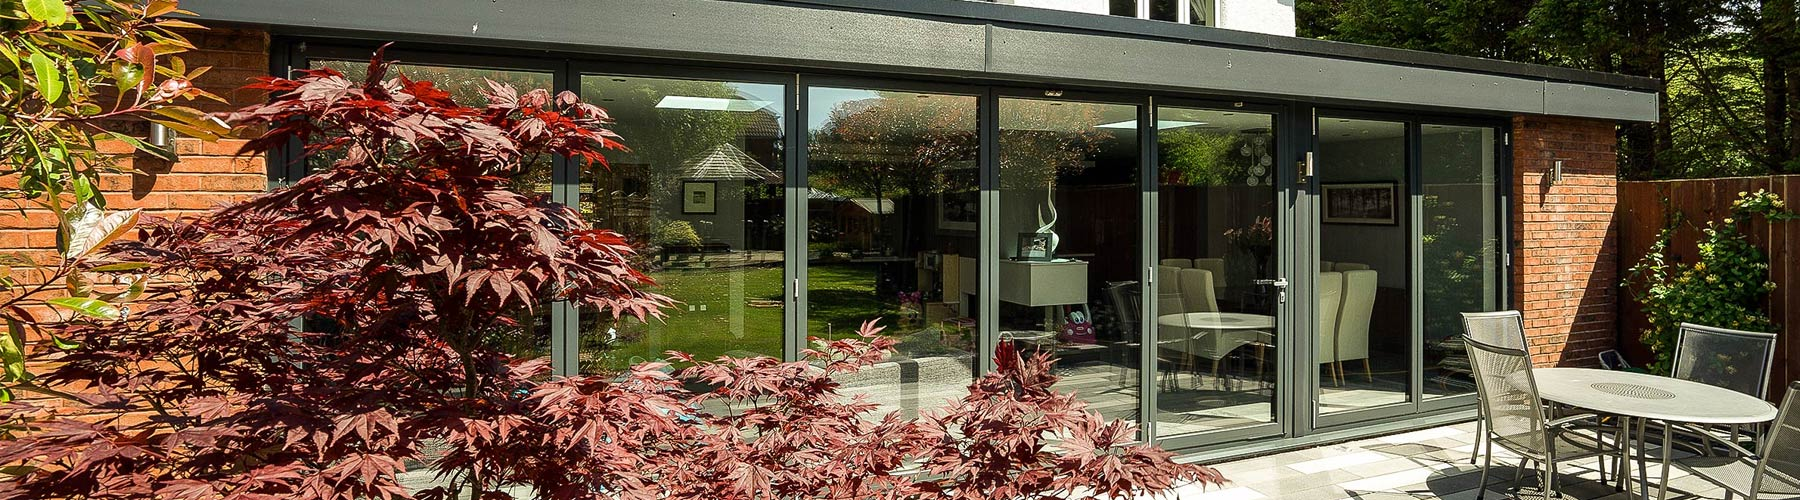 Aluminium bifolds installed Alderly Edge, Cheshire